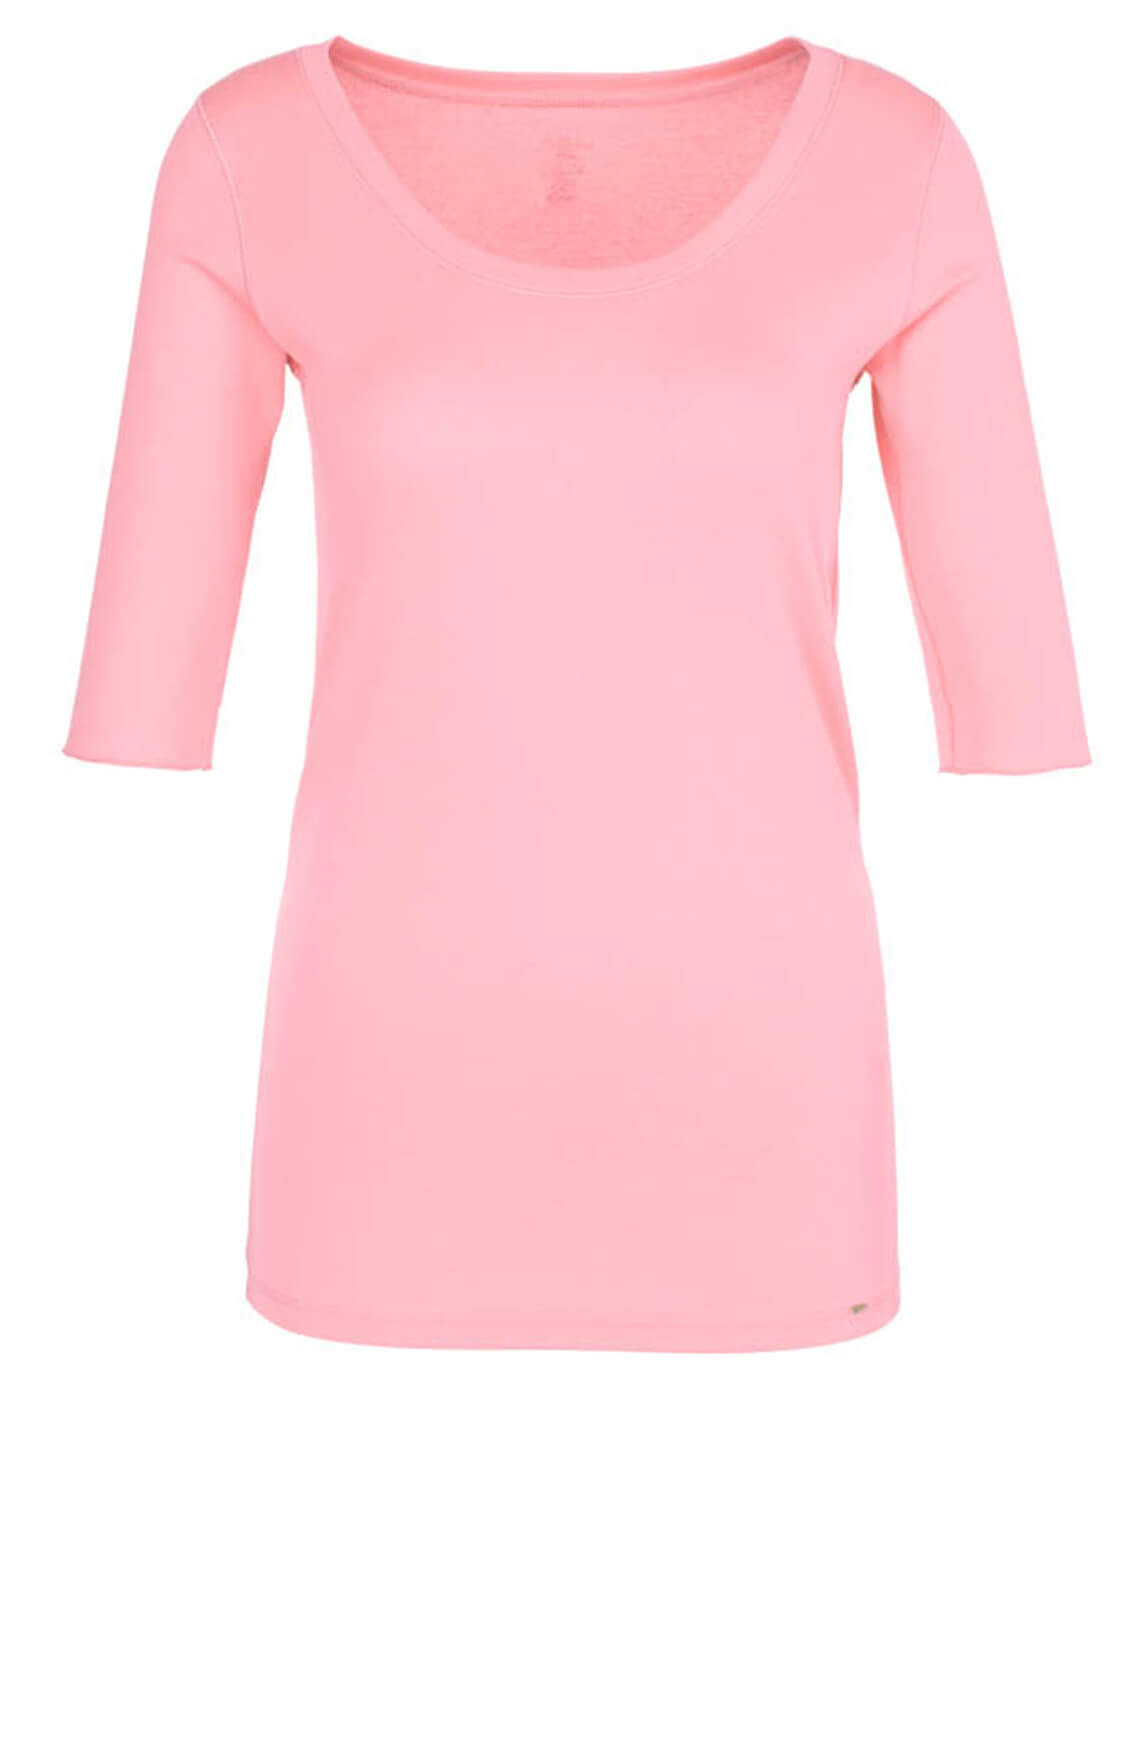 Marccain Dames Basic shirt roze